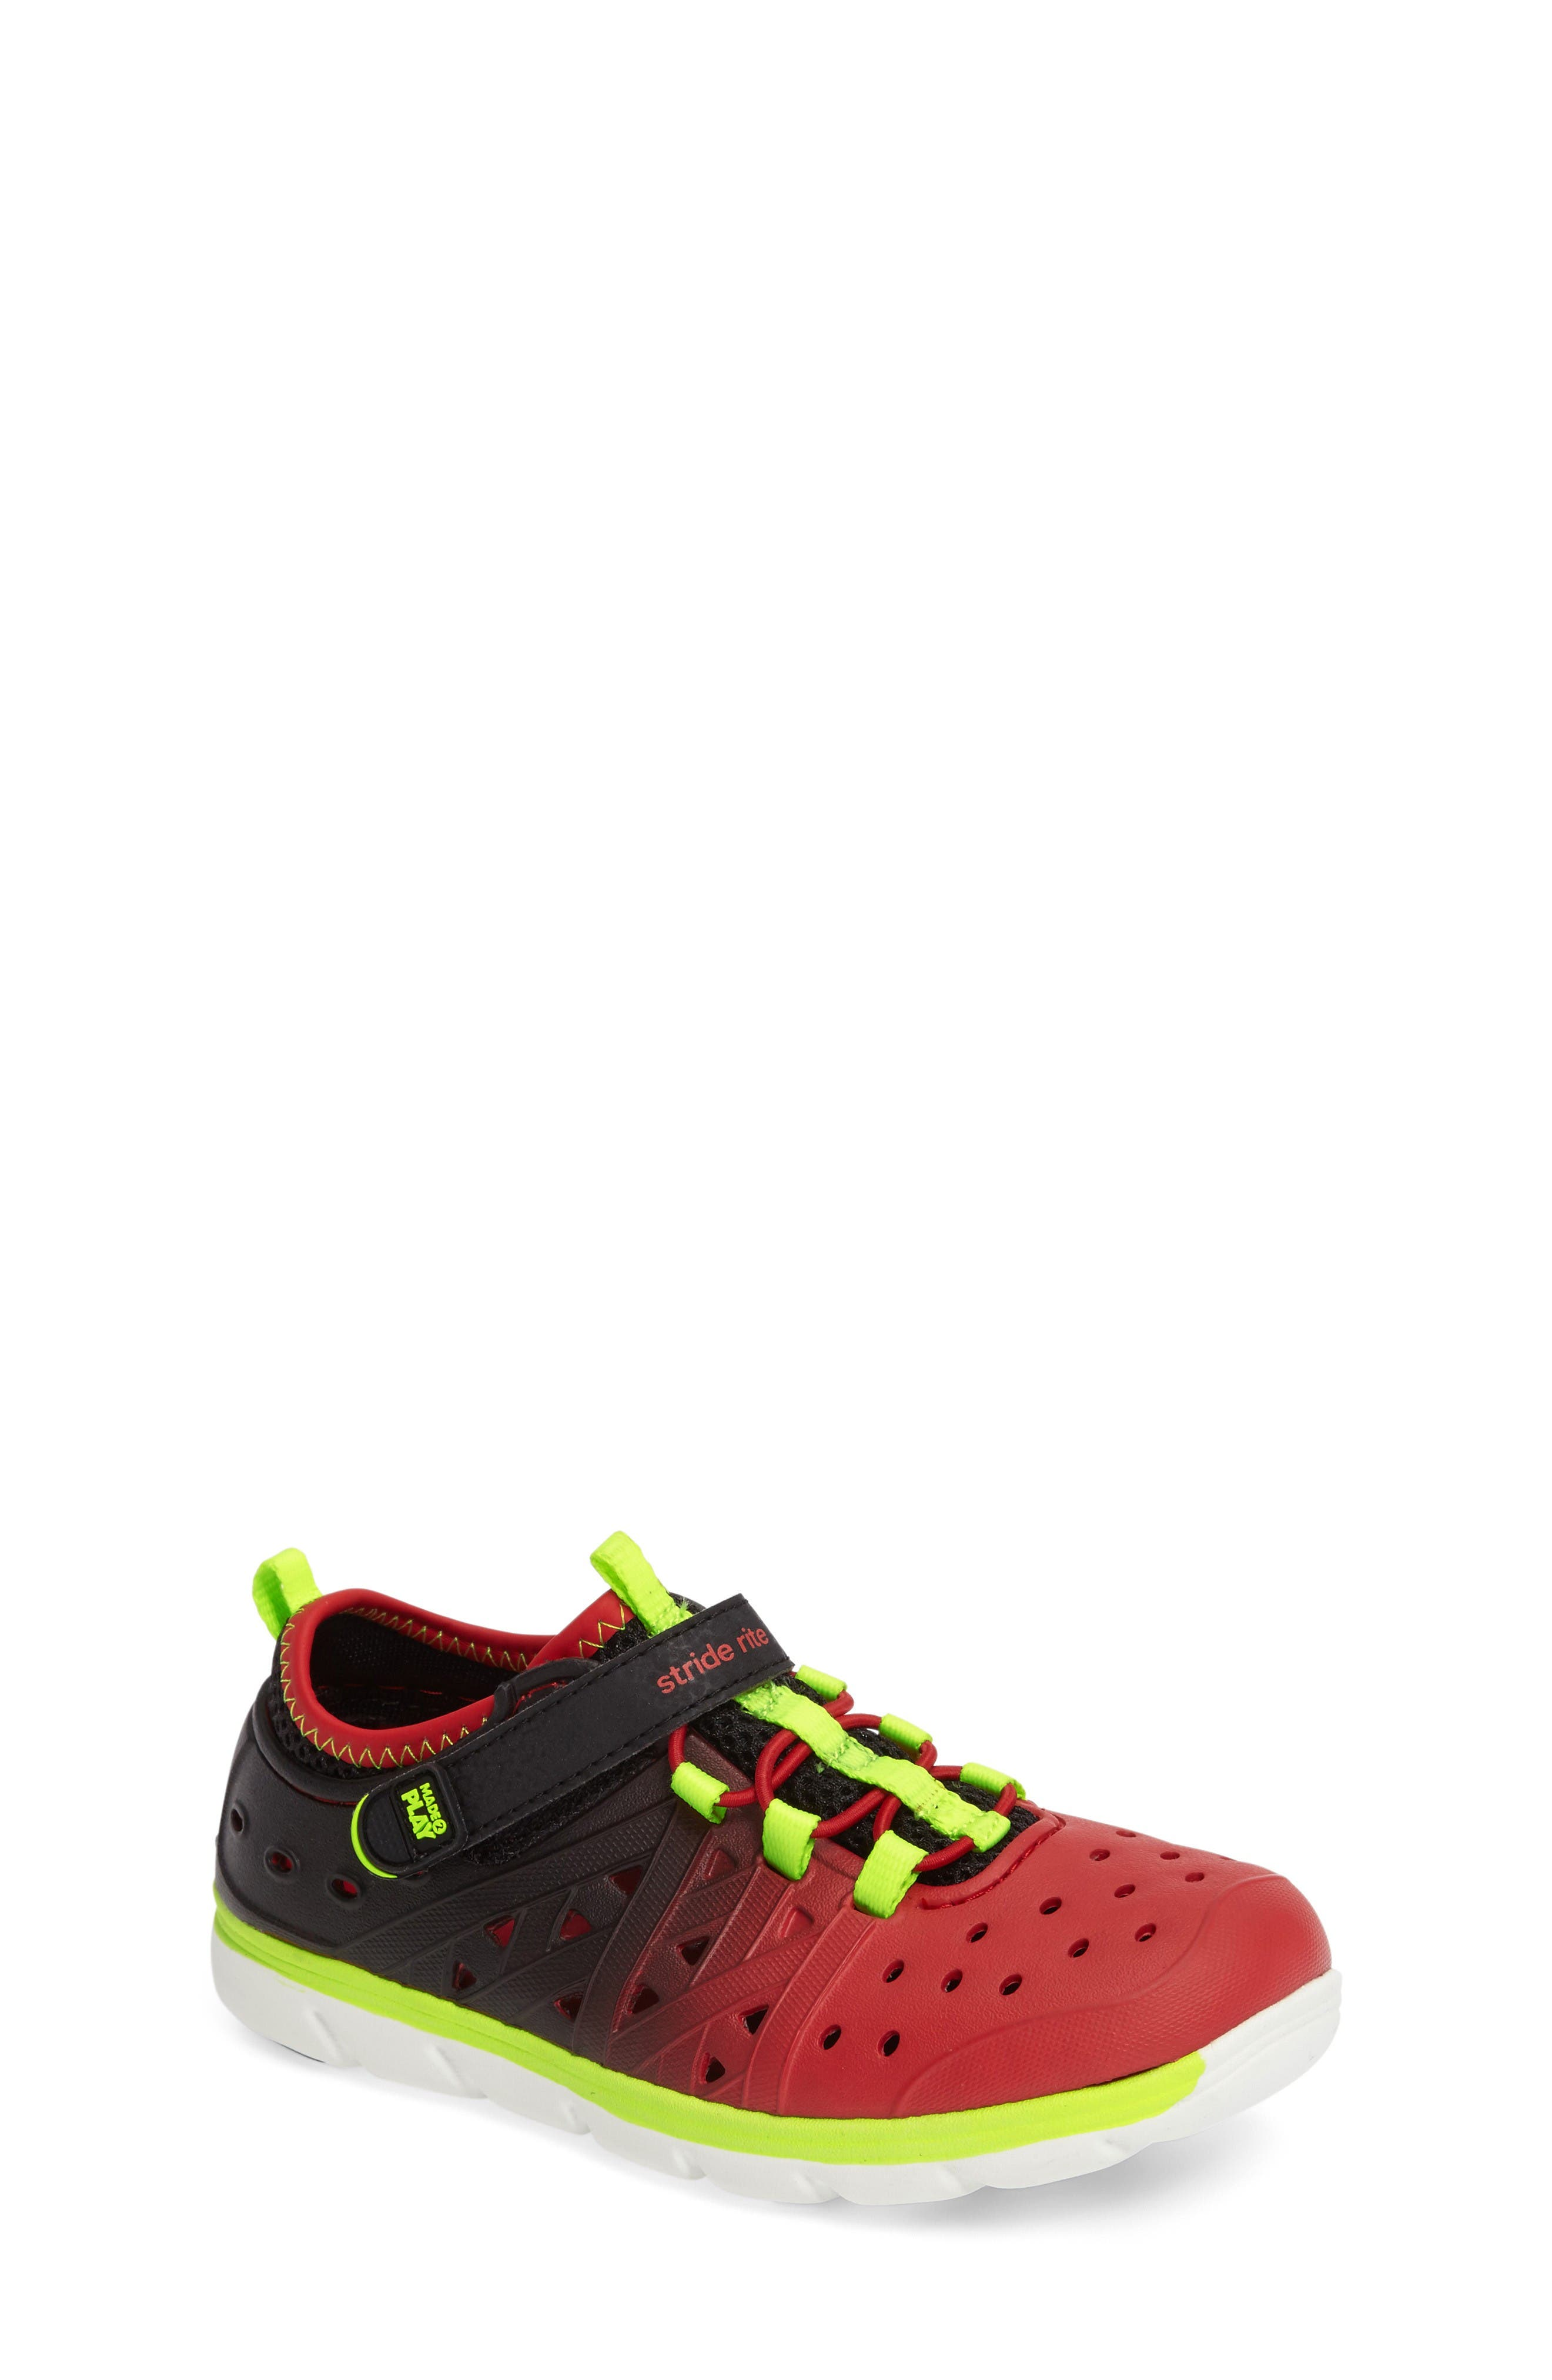 Made2Play<sup>®</sup> Phibian Sneaker,                             Main thumbnail 1, color,                             Black/ Red